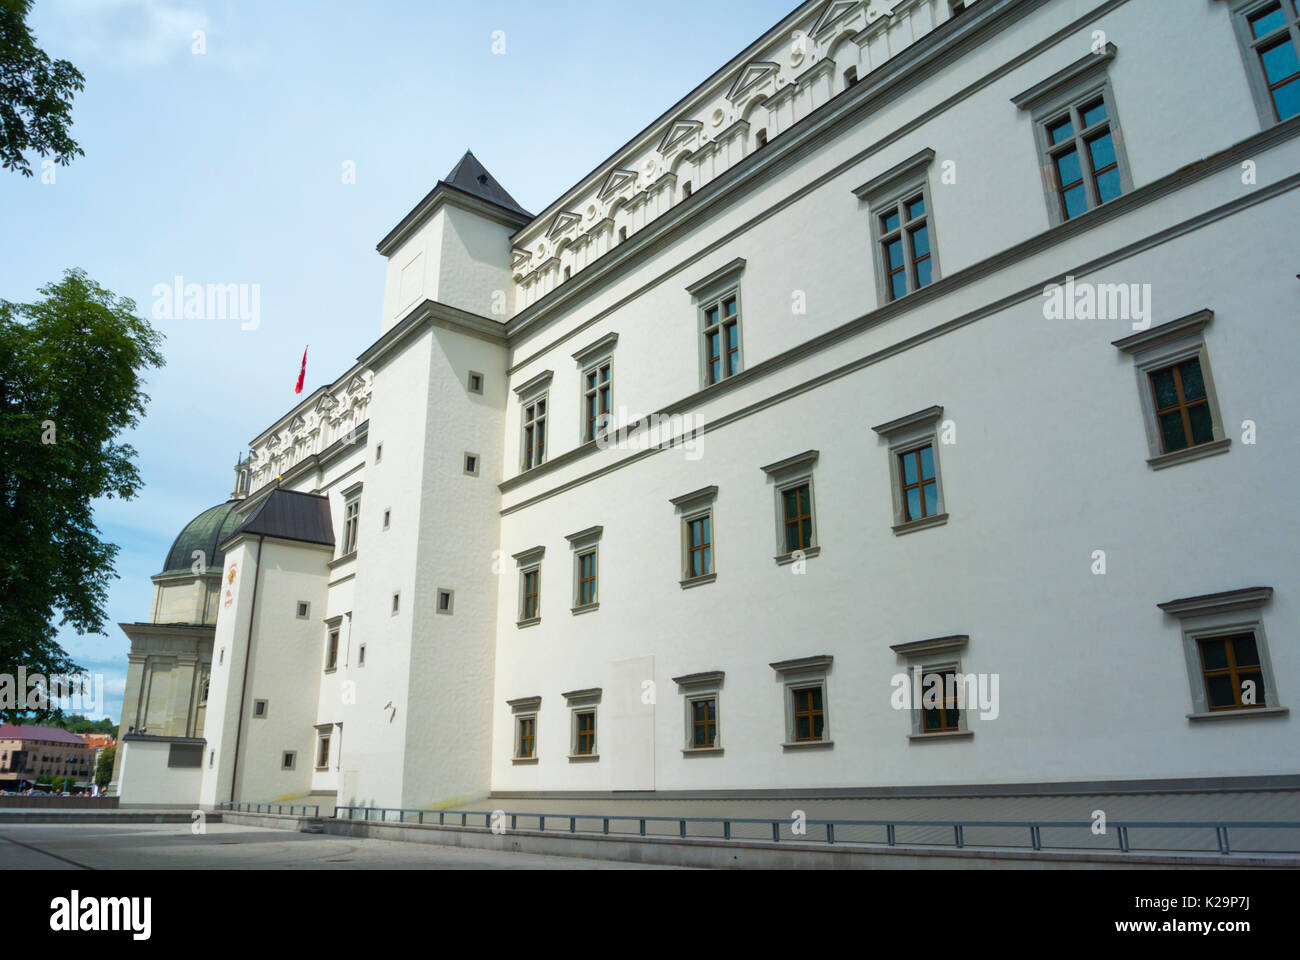 Palace of the Grand Dukes of Lithuania, Katedros aikste, Cathedral Square, Vilnius, Lithuania - Stock Image